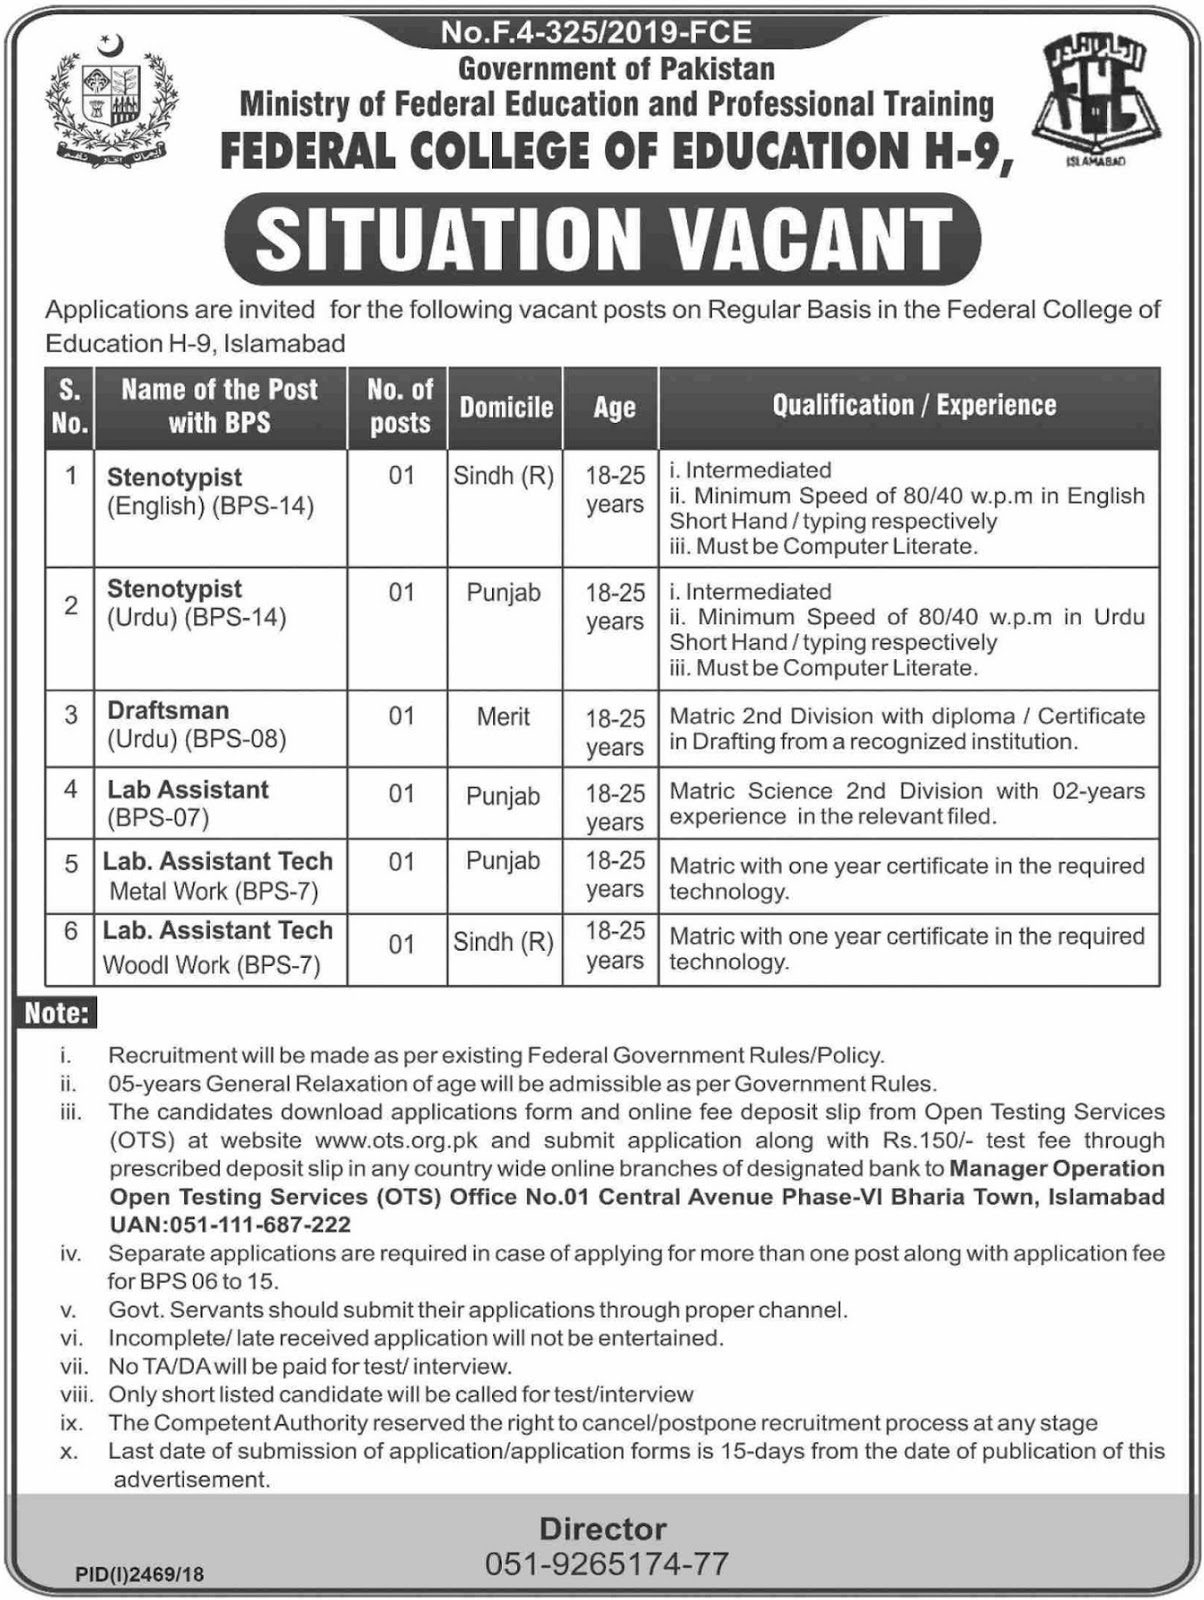 Federal College of Education Islamabad Jobs 2019 vis OTS Testing Service